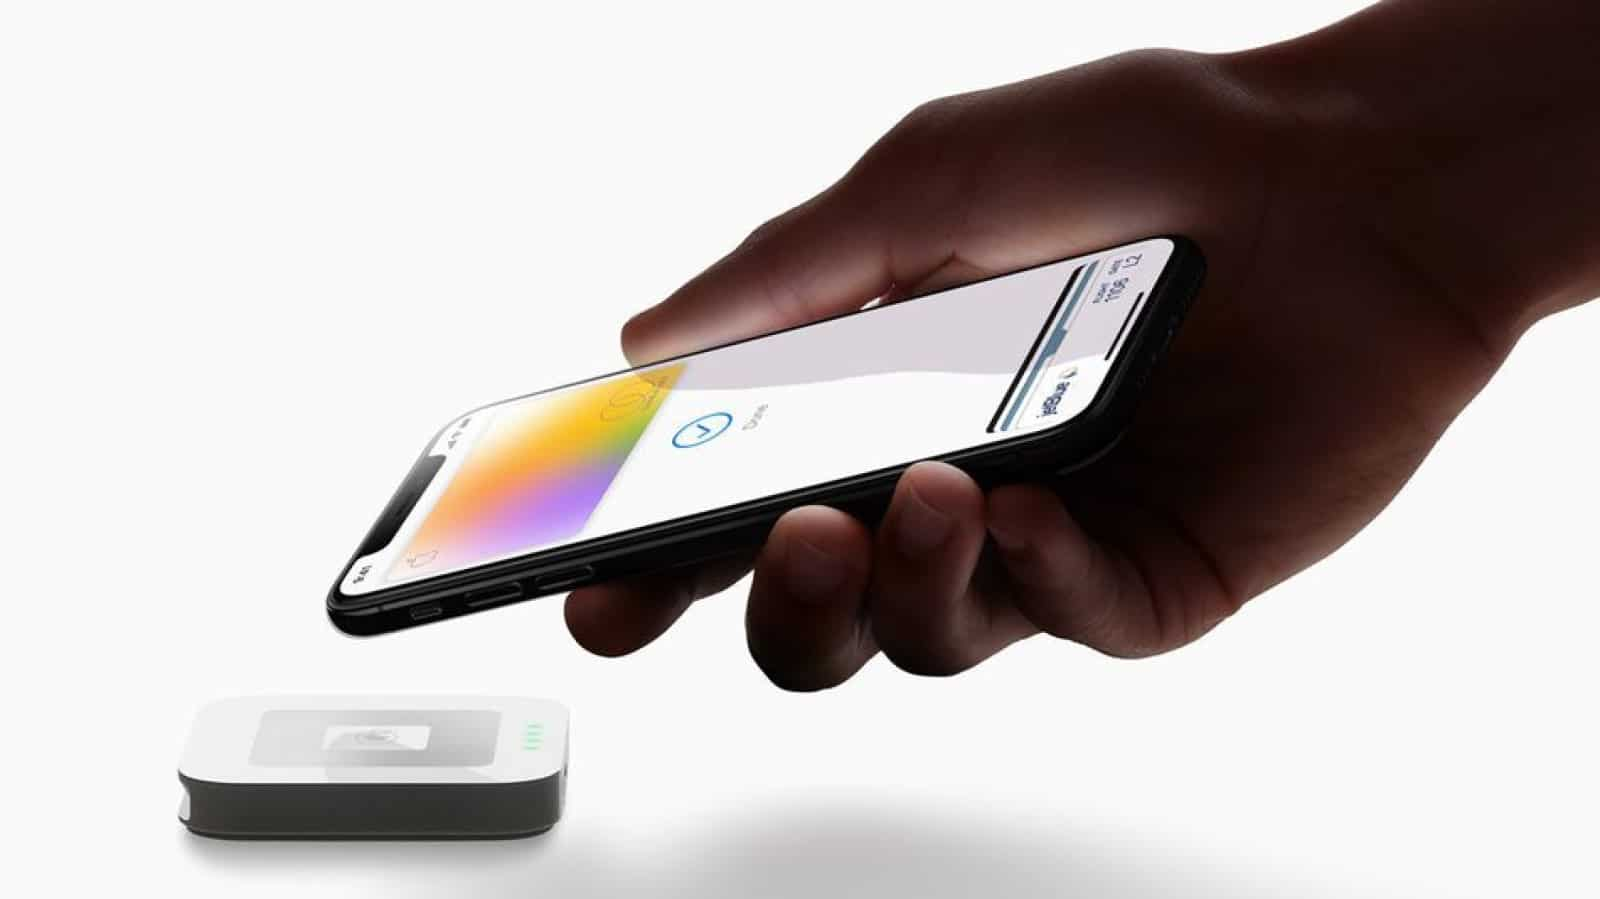 apple card iphone contactless payment in use